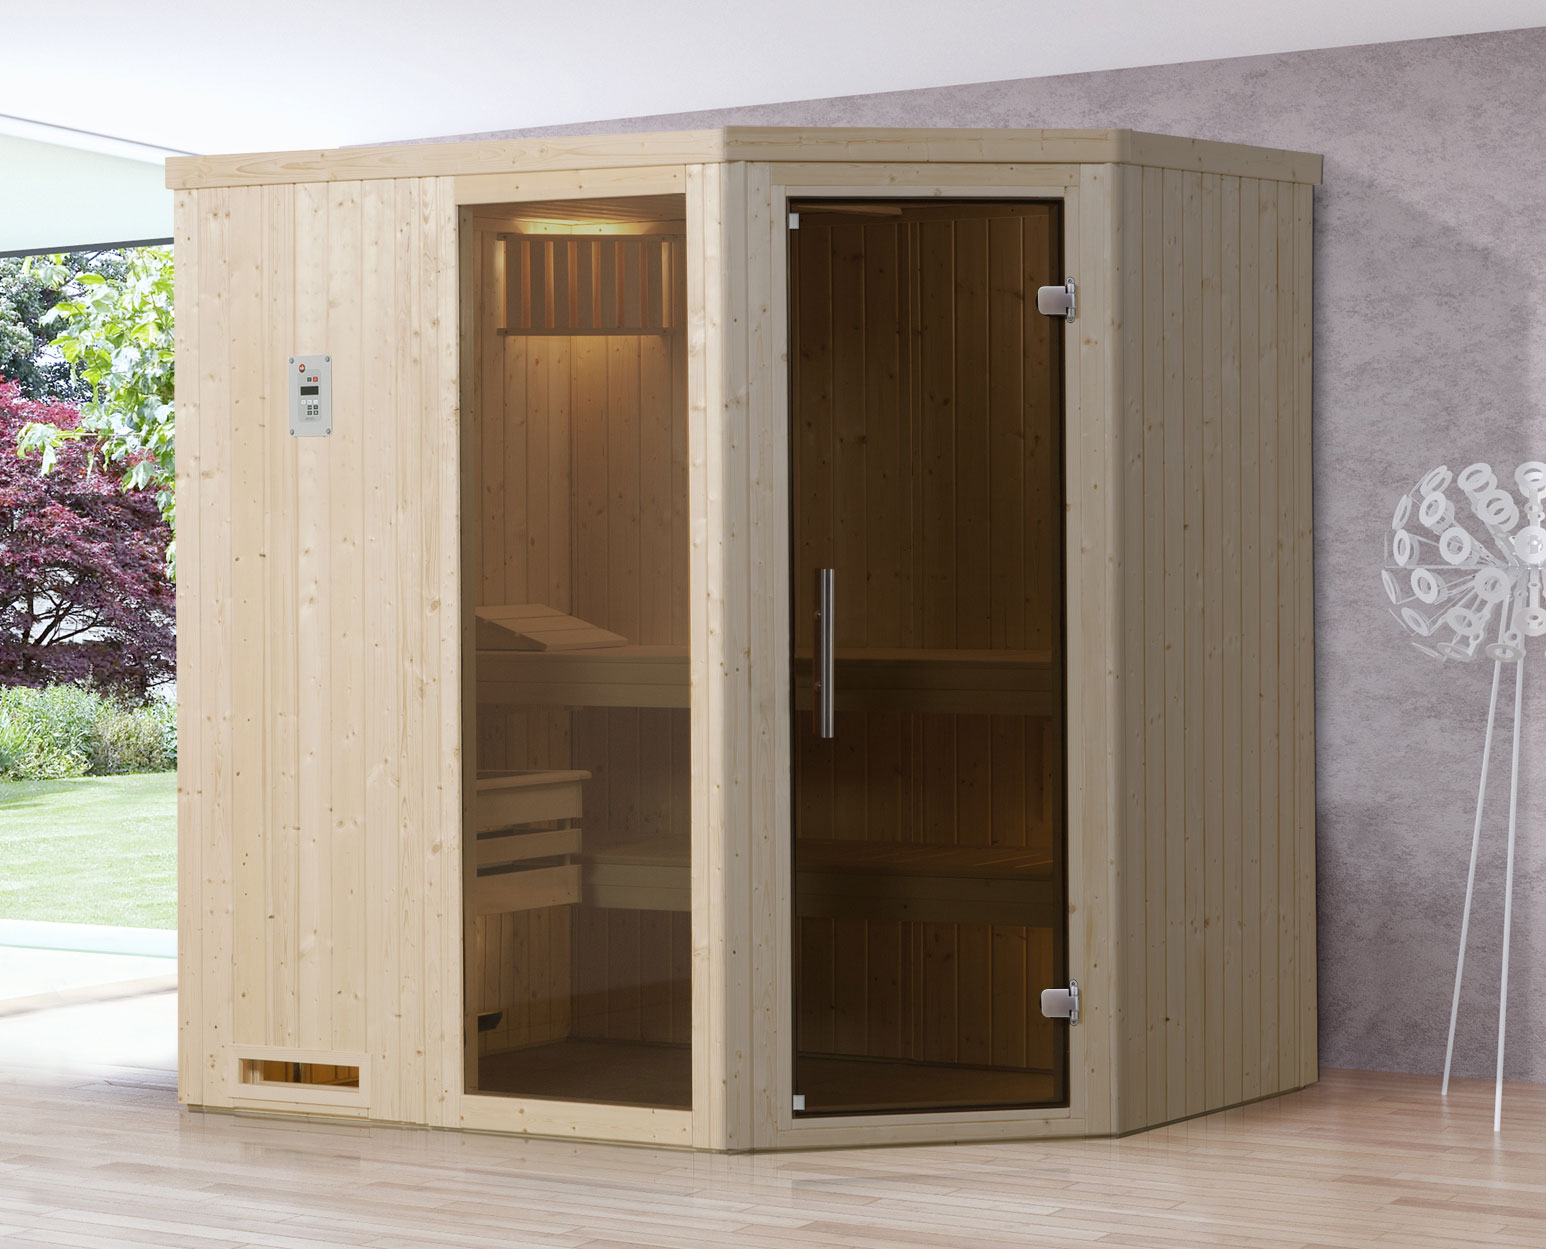 weka sauna 508 gtf gr 2 68mm ohne ofen mit glast r und. Black Bedroom Furniture Sets. Home Design Ideas